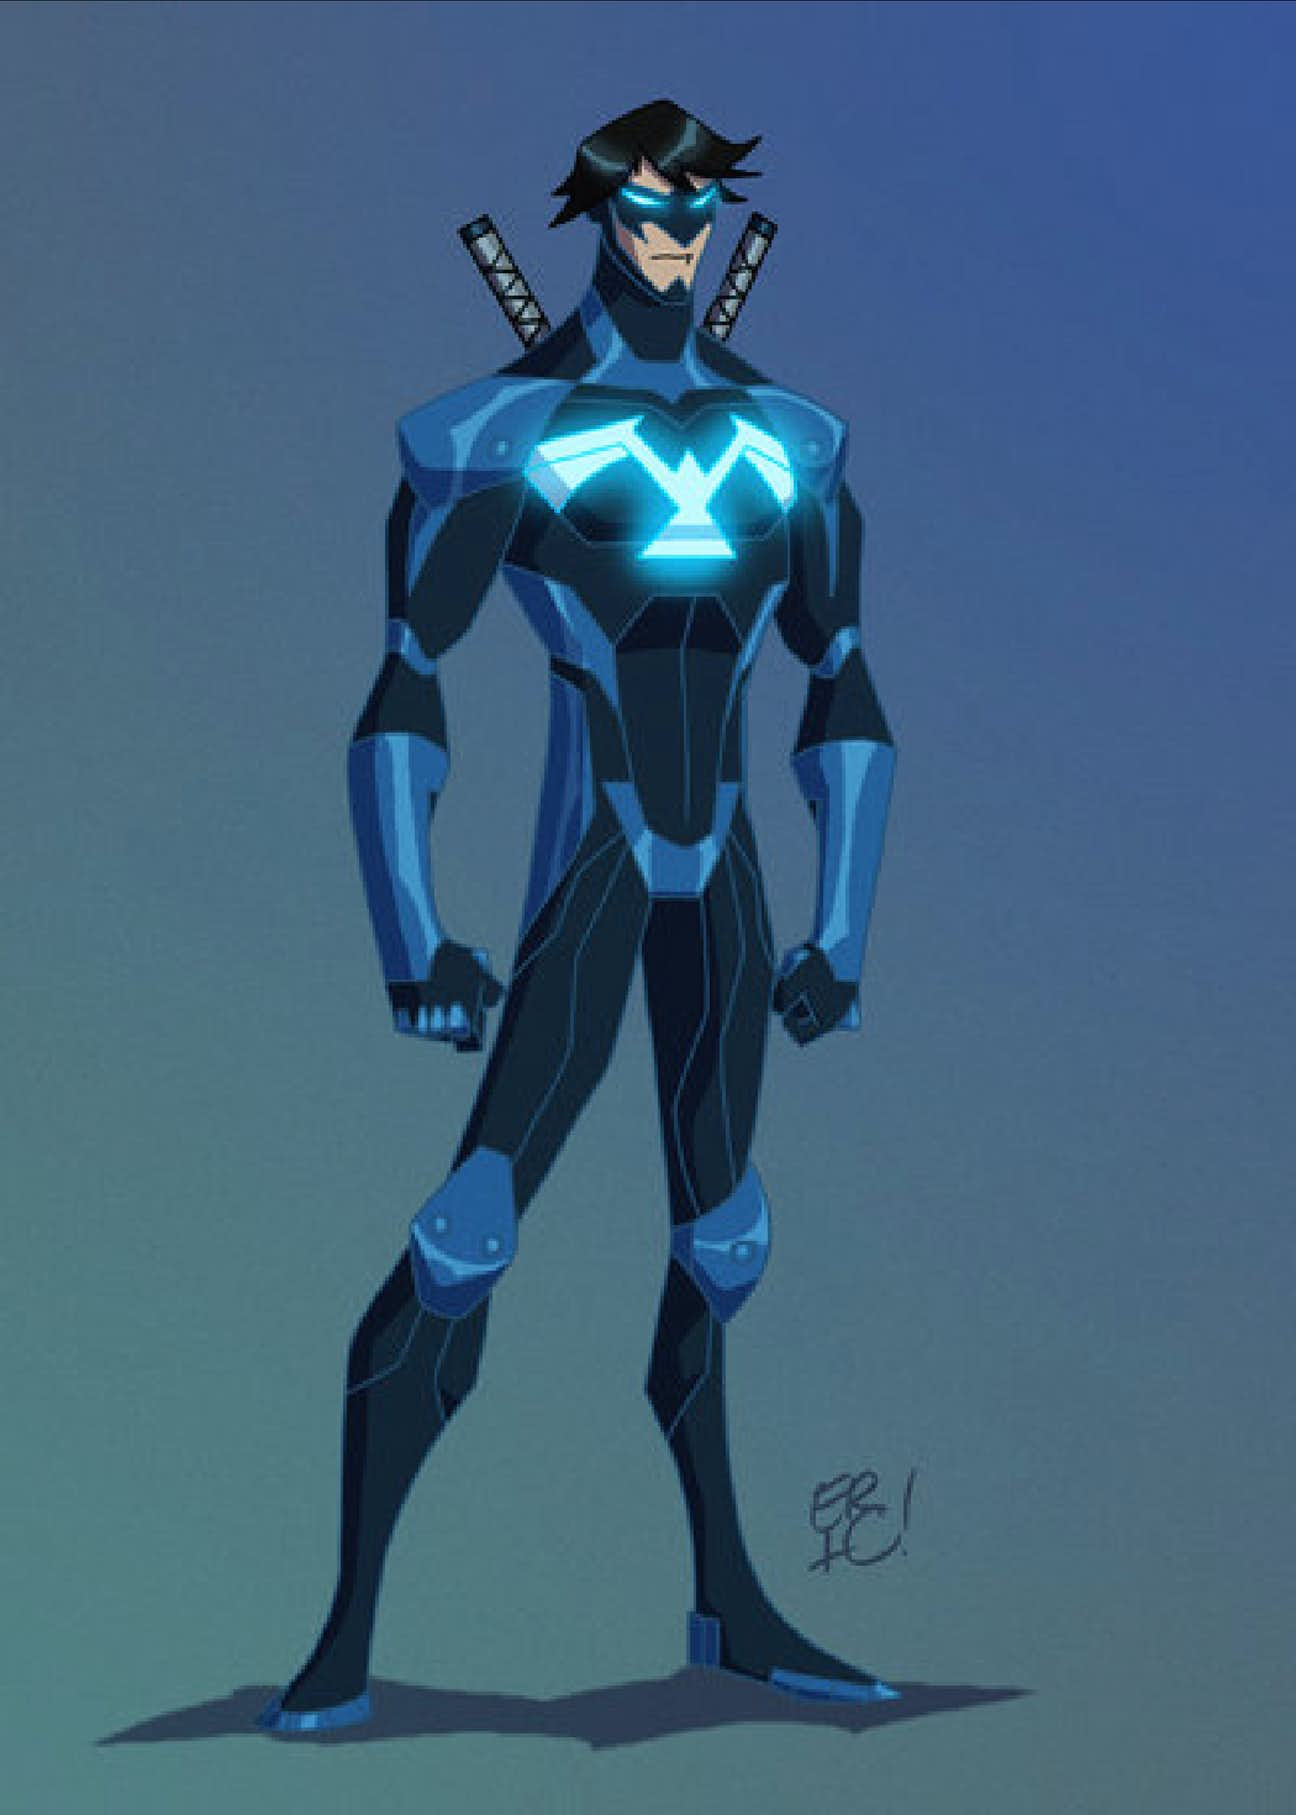 15 fan designed young justice uniforms way better than the show niadd - Pictures of nightwing from young justice ...